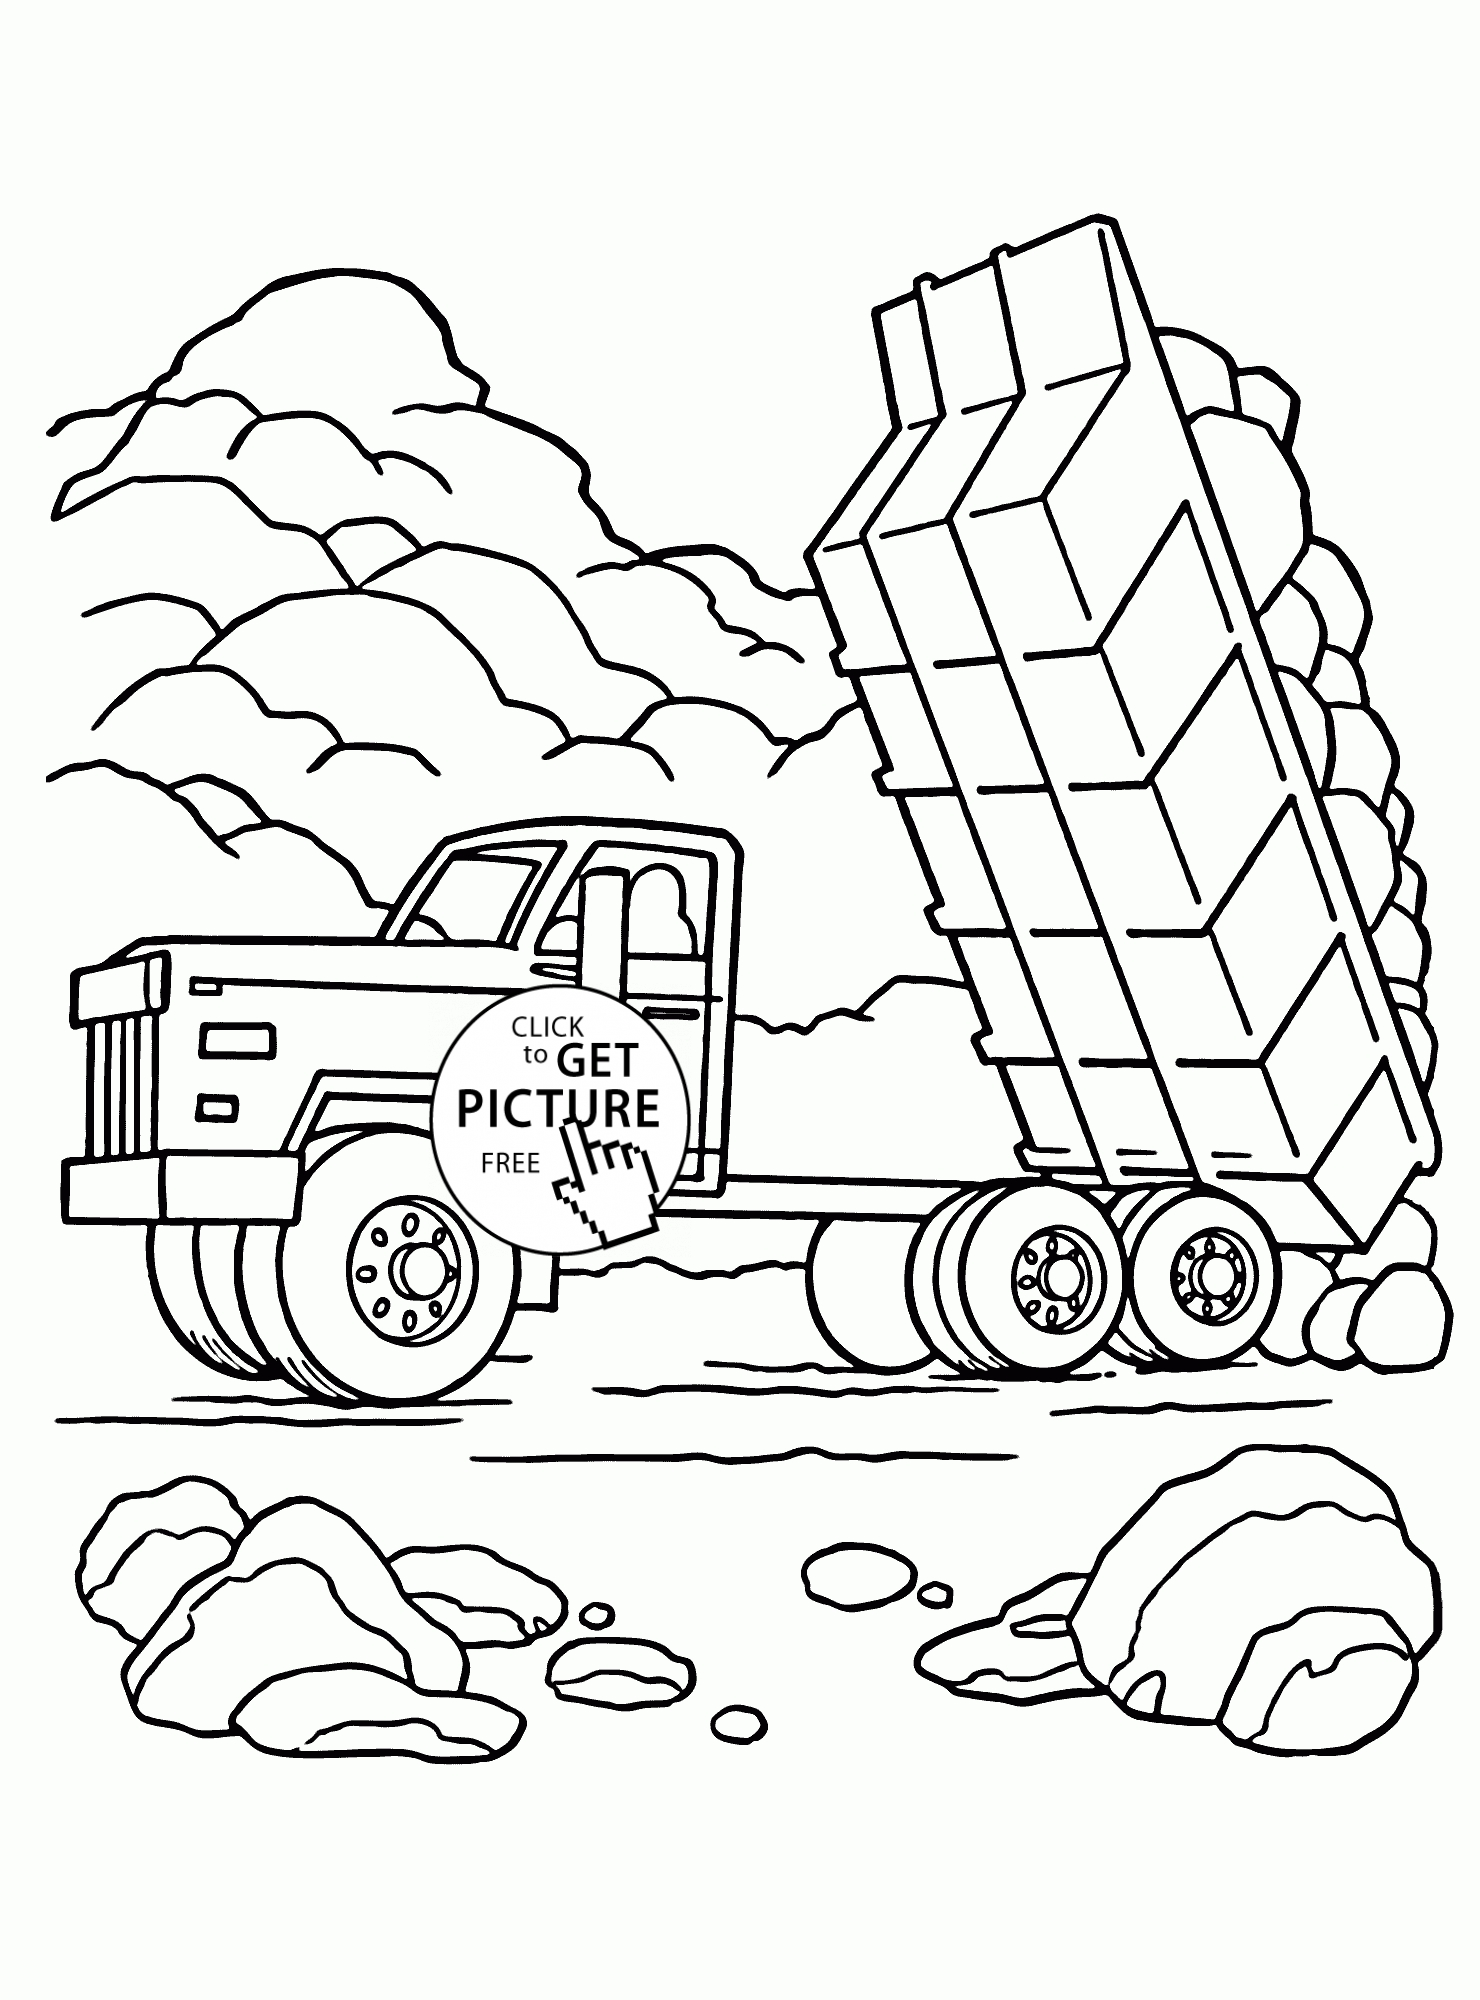 Printable Transportation Coloring Pages